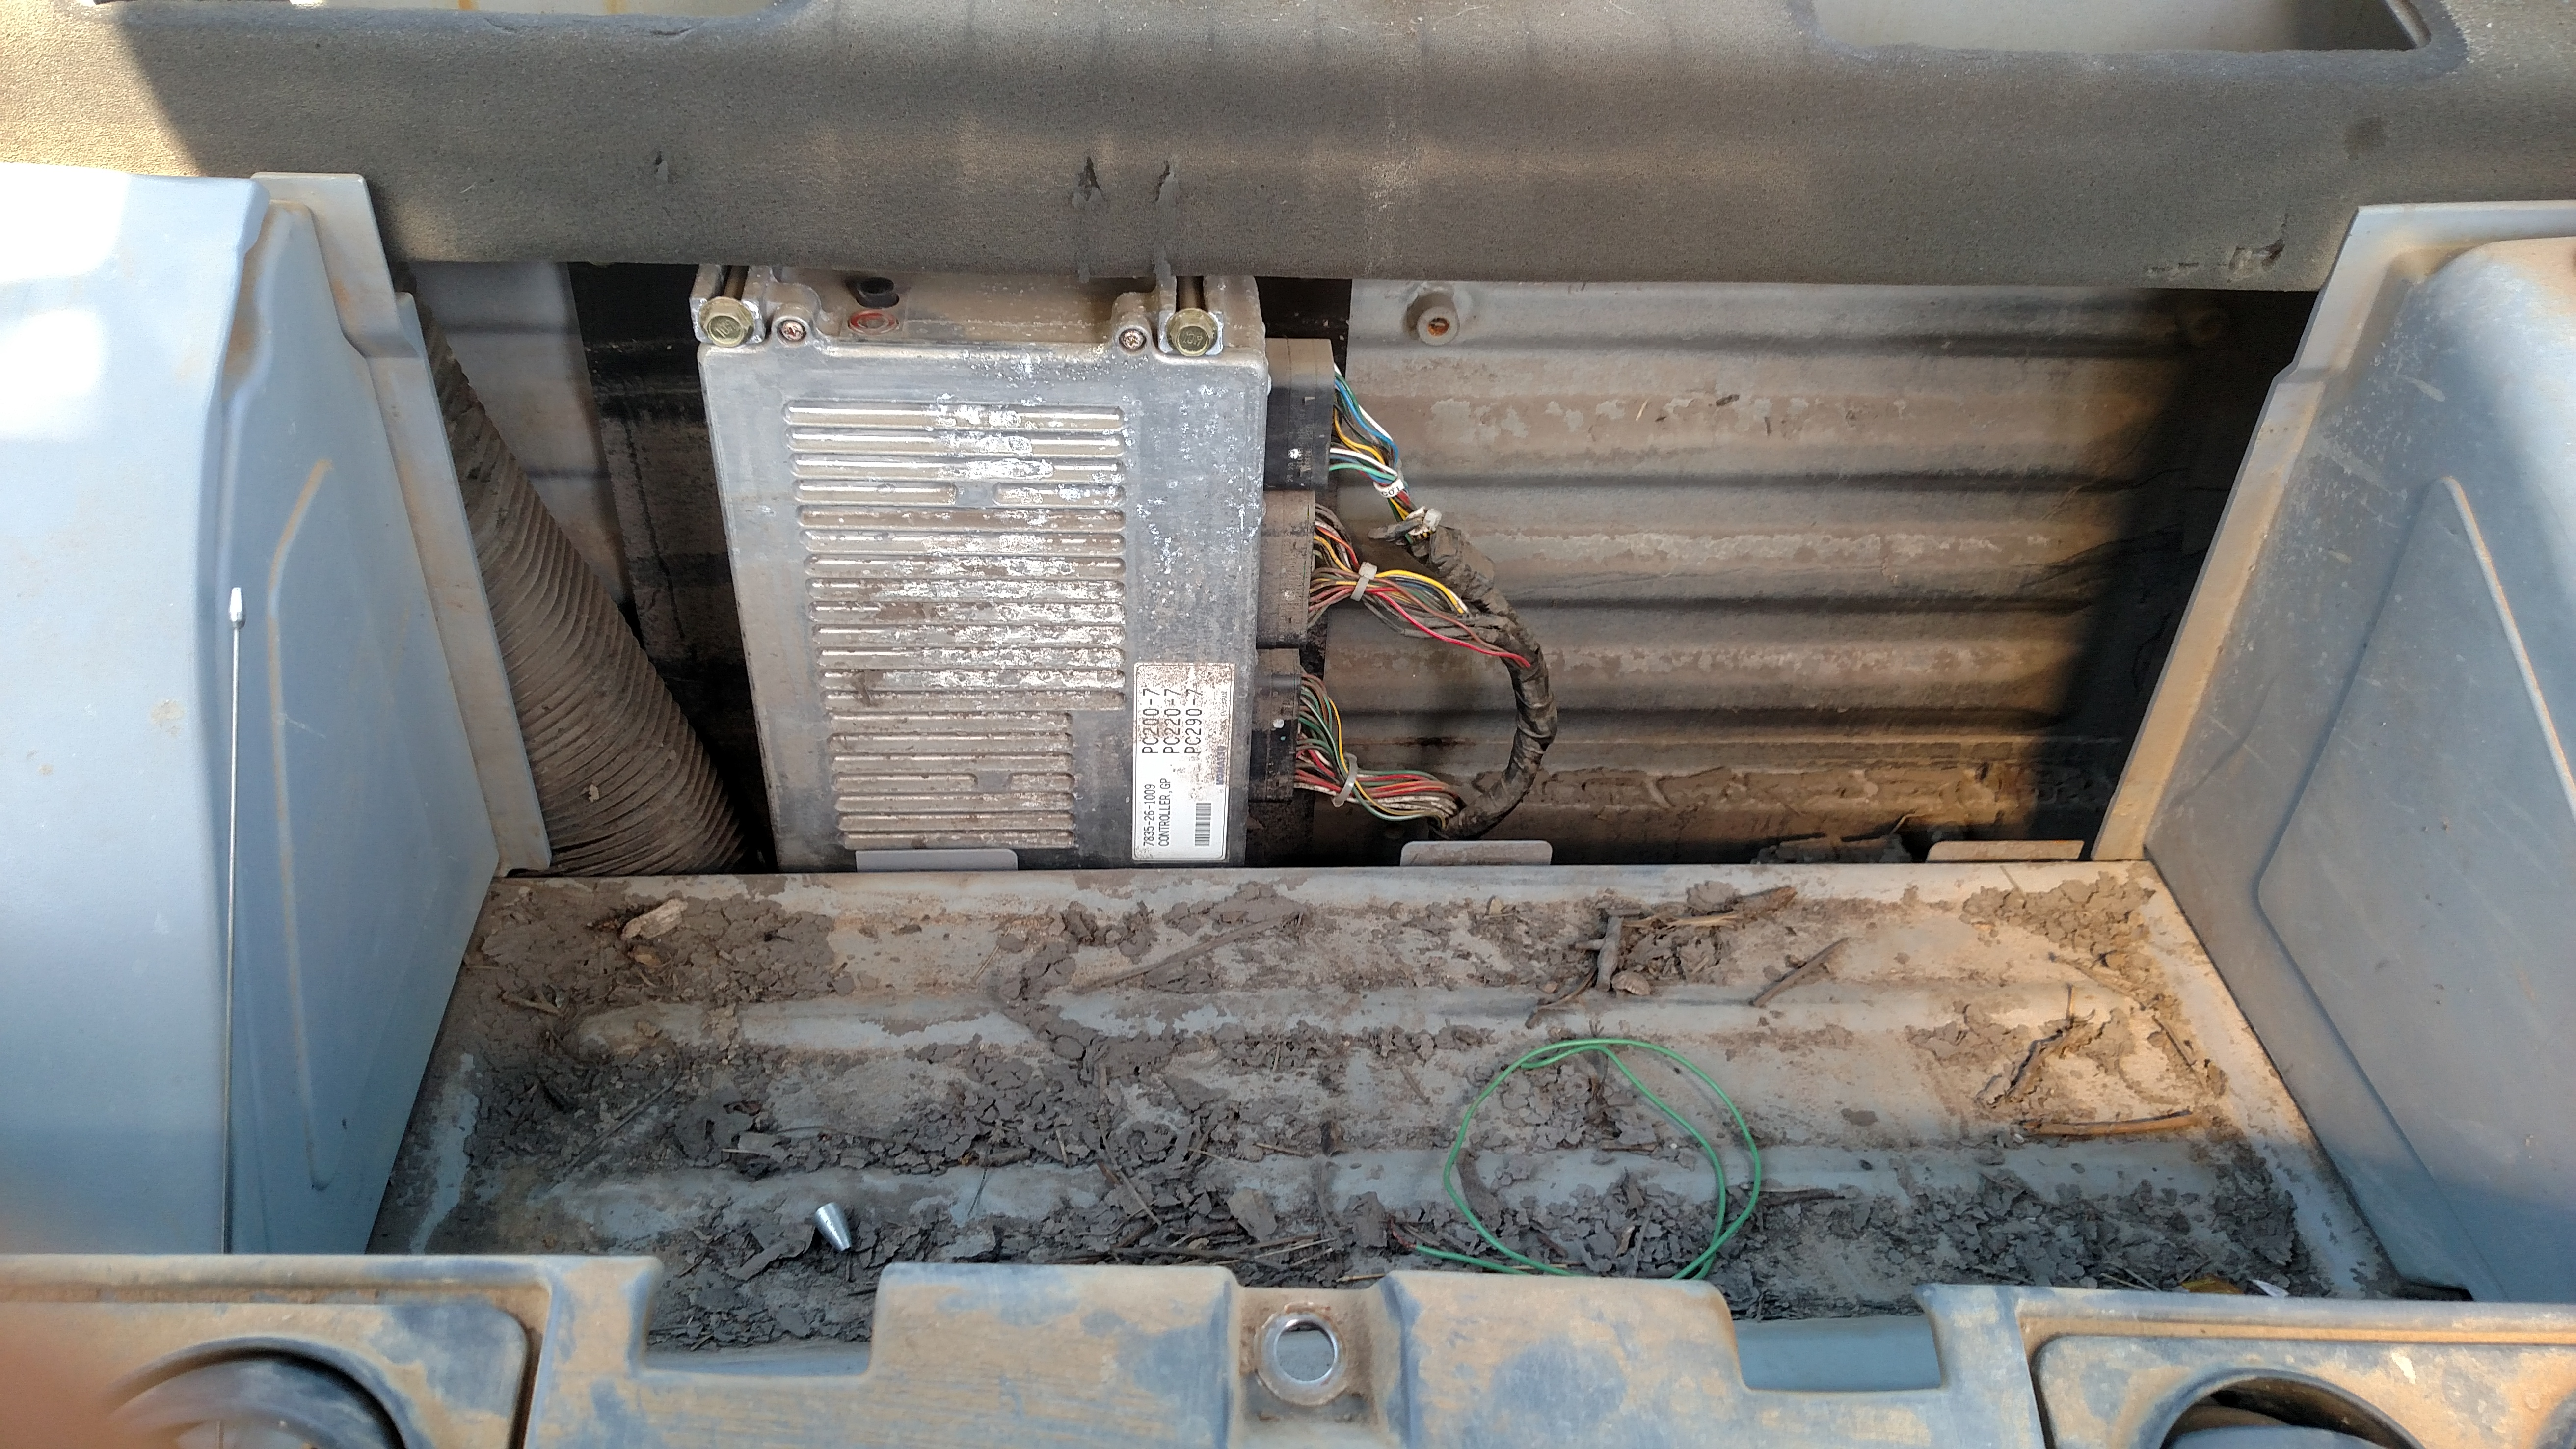 I have a Komatsu pc200lc-7 that had been submerged in water ... Komatsu Sk Pin Wire Harness on